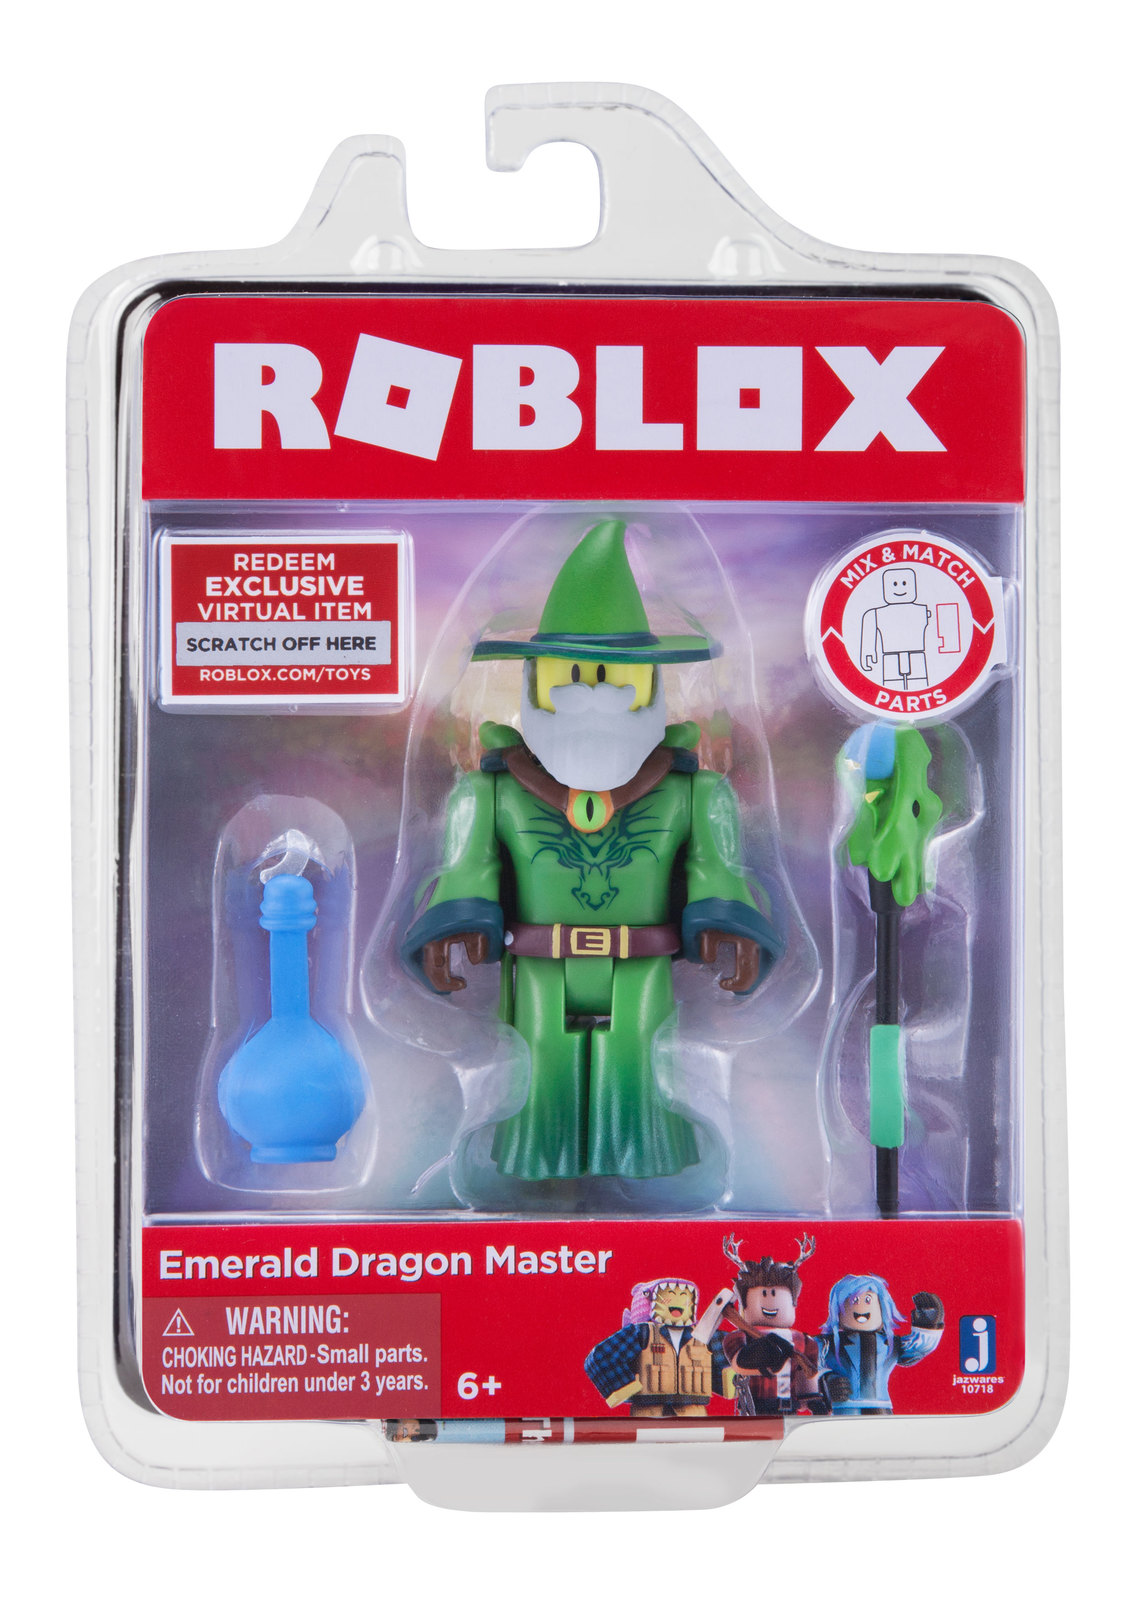 Roblox: Core Figure Pack - Emerald Dragon Master image